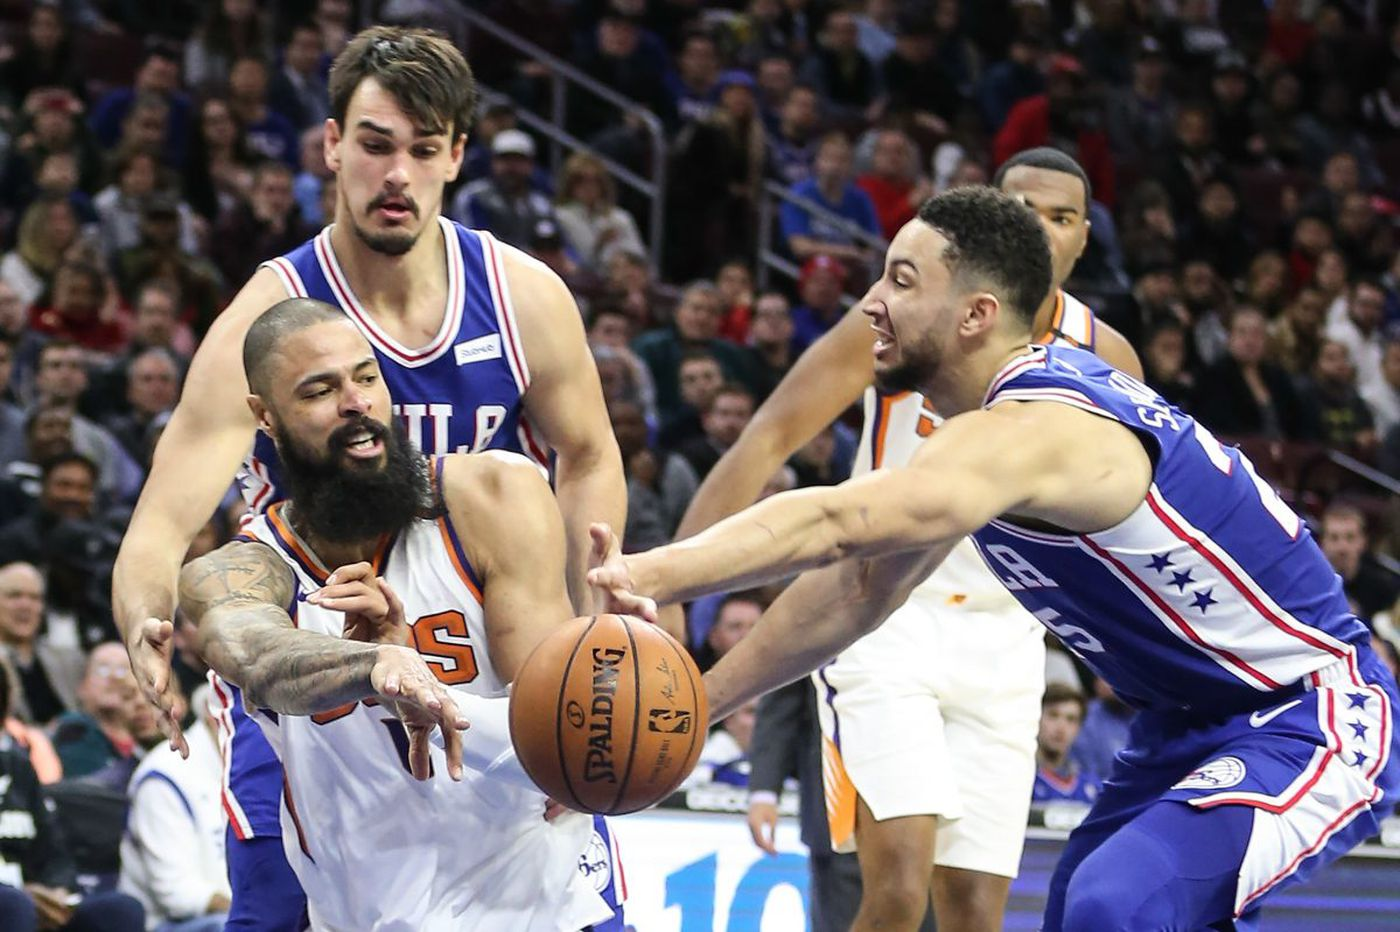 Sixers Ben Simmons, Dario Saric eager to shine in Rising Stars game